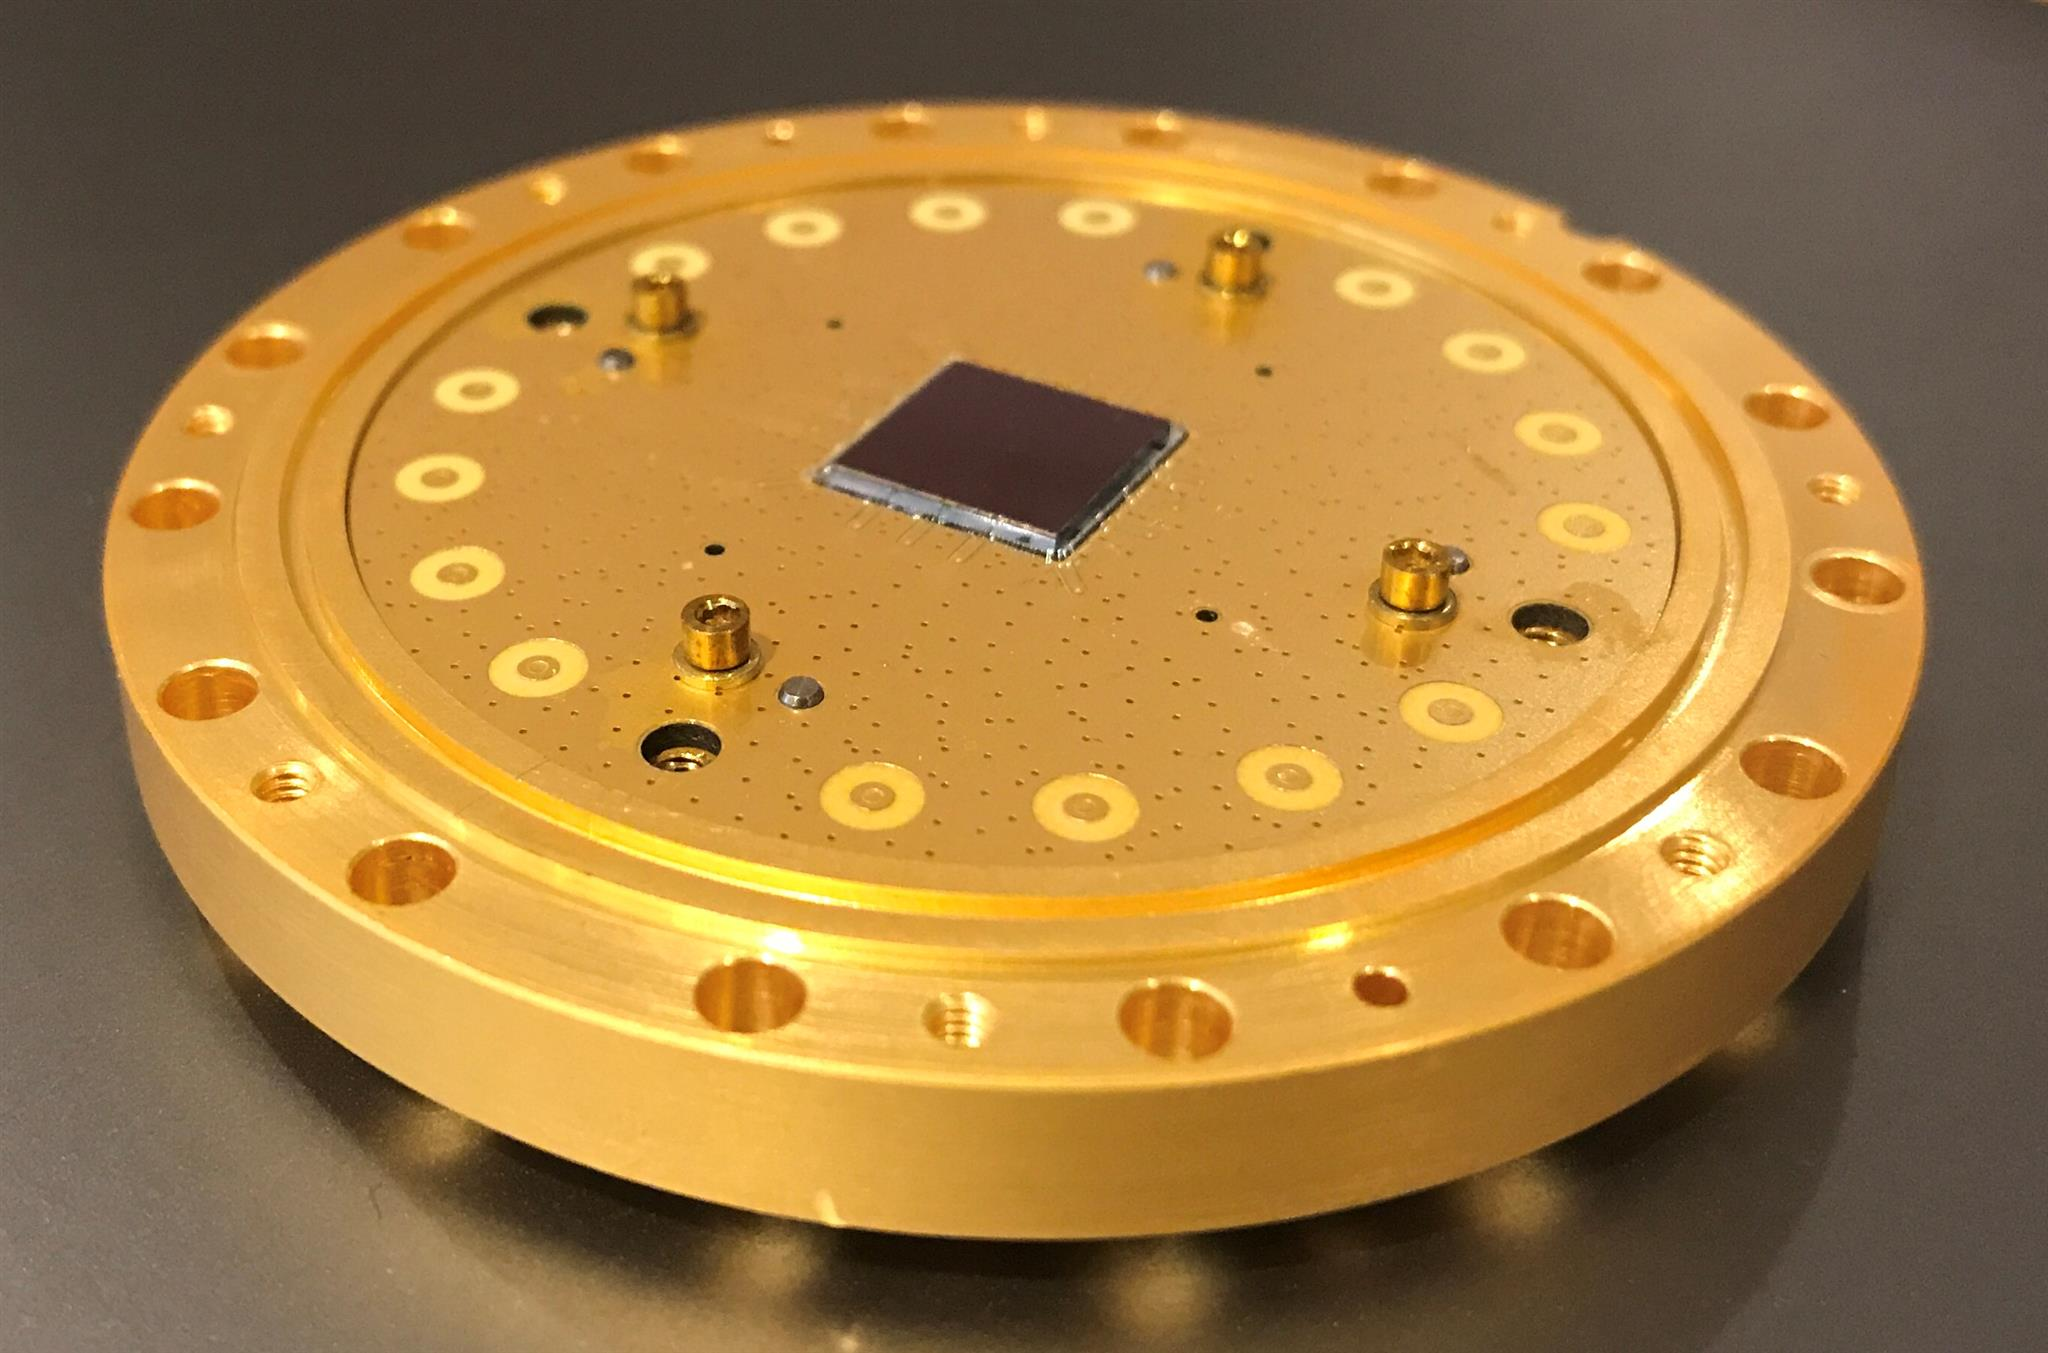 An 8-qubit quantum processor made by California-based quantum computing startup, Rigetti. Photo: Jacob Biamonte // Skoltech.